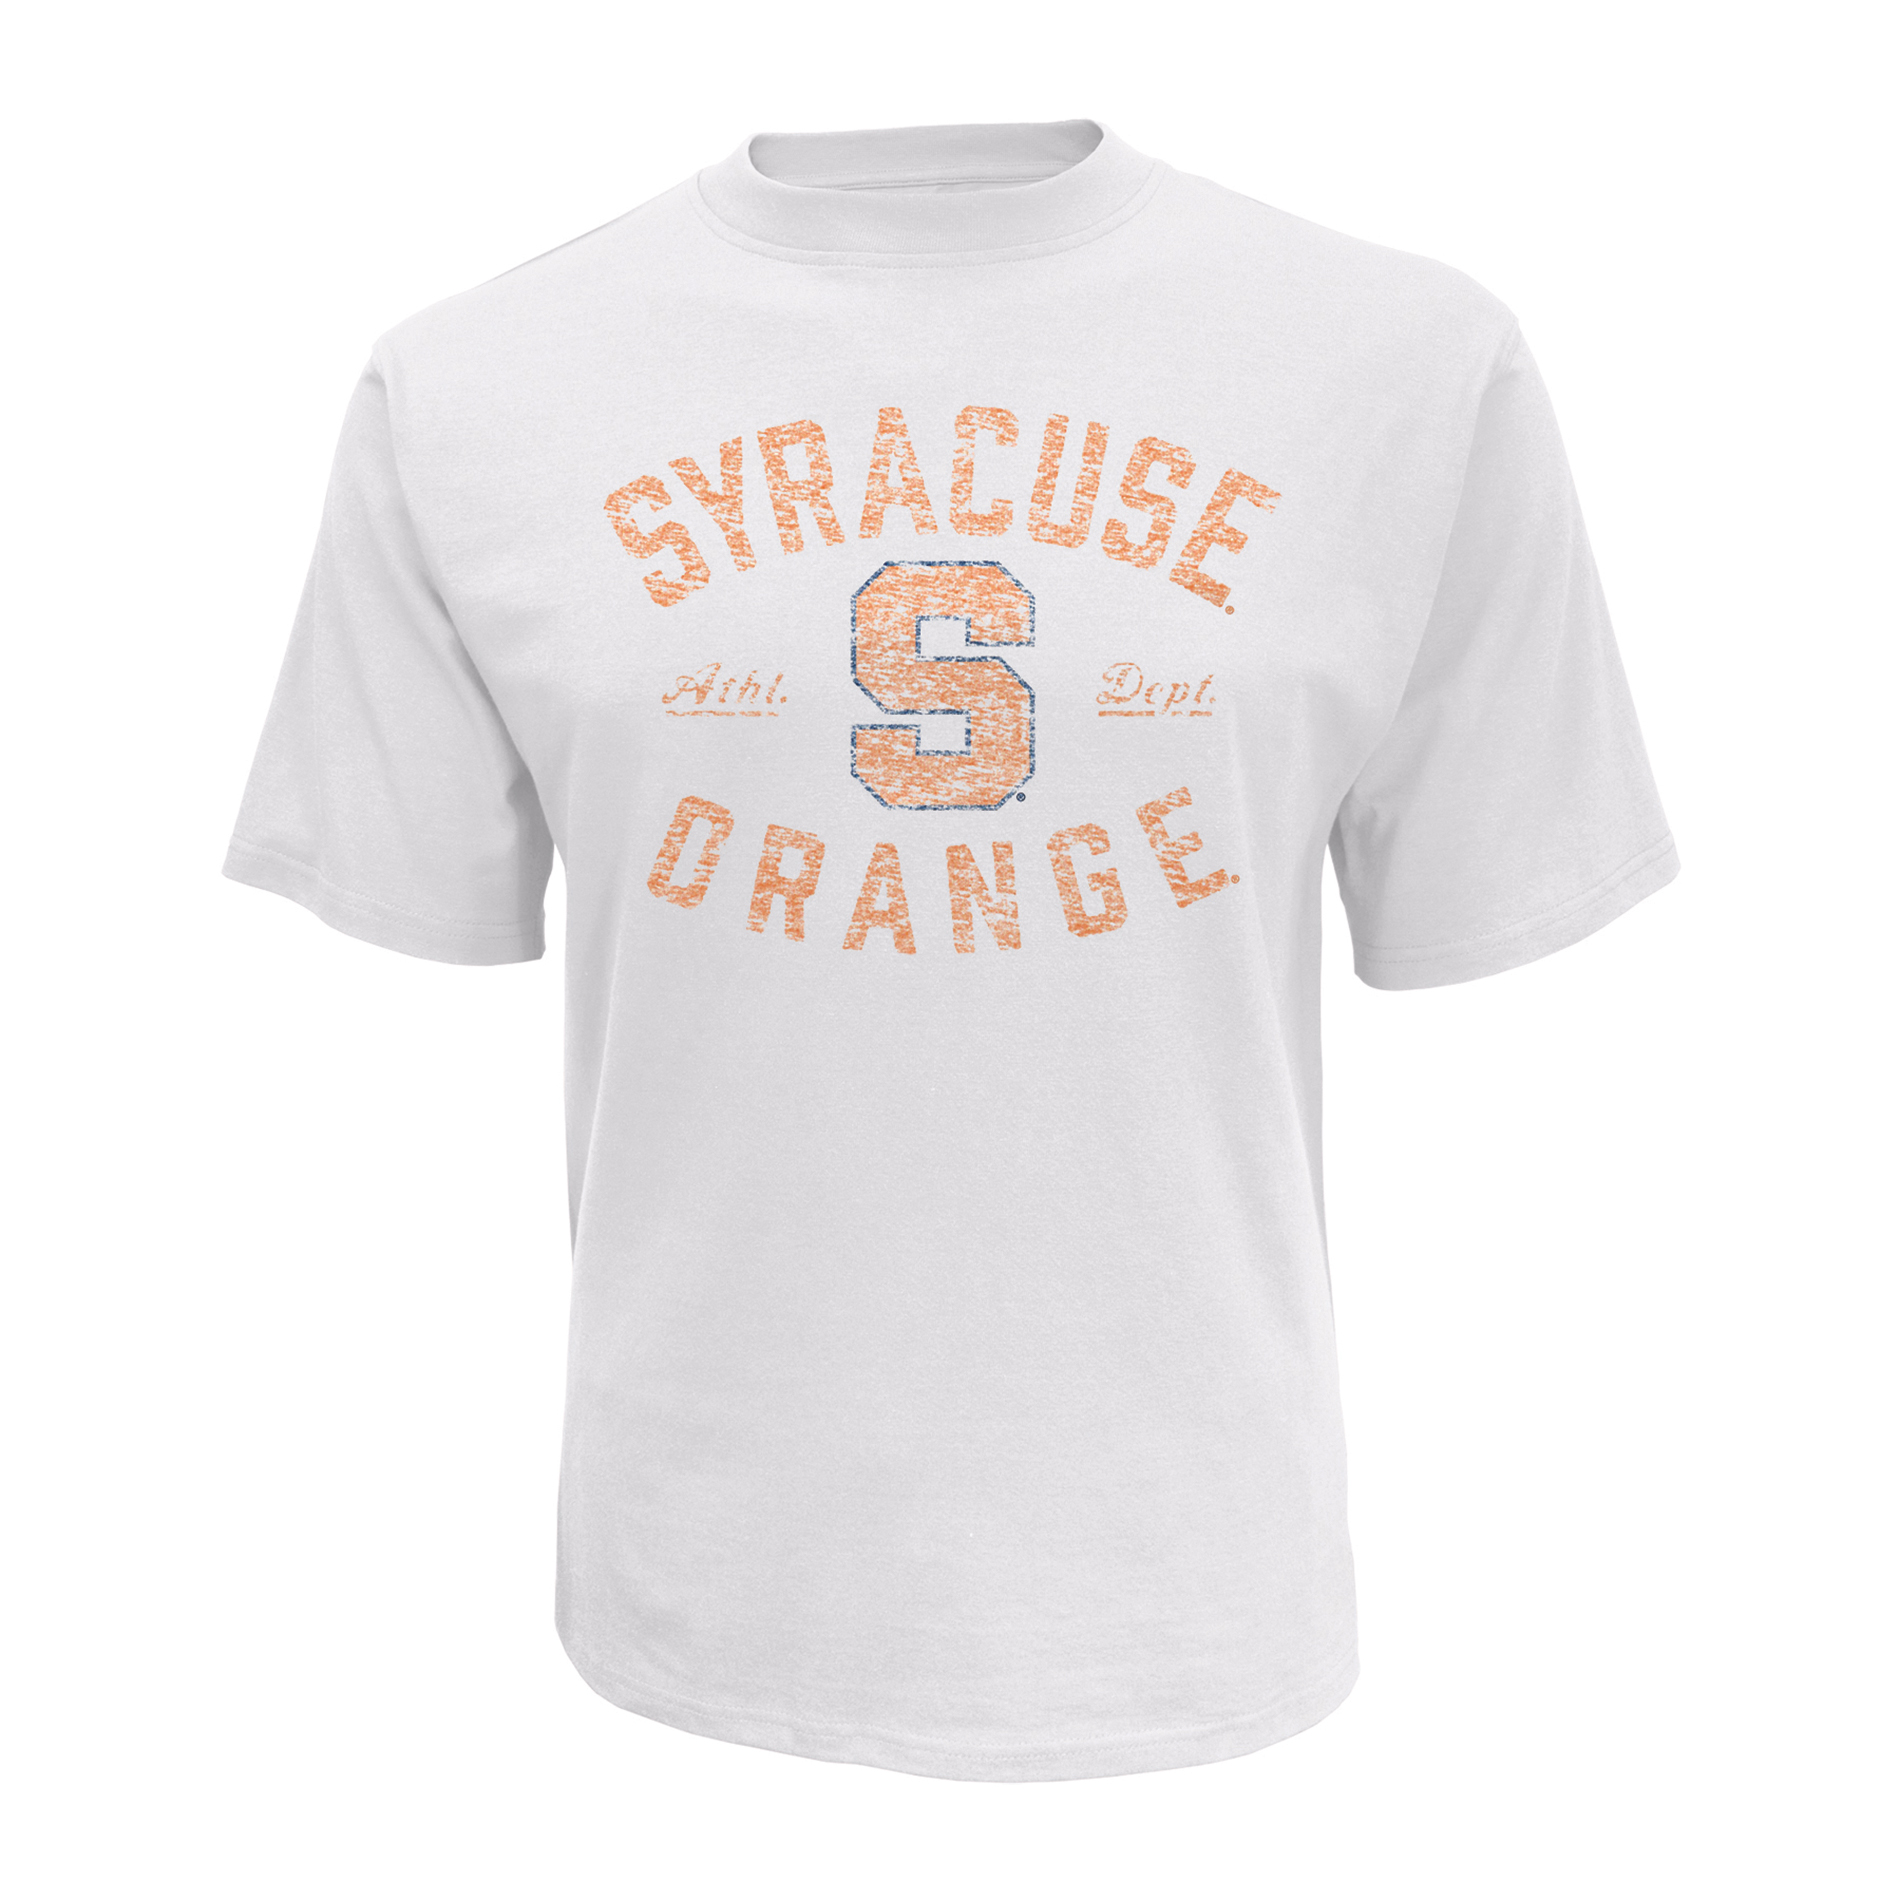 petite NCAA Men's Short-Sleeve T-Shirt - Syracuse Orange, Size: XL